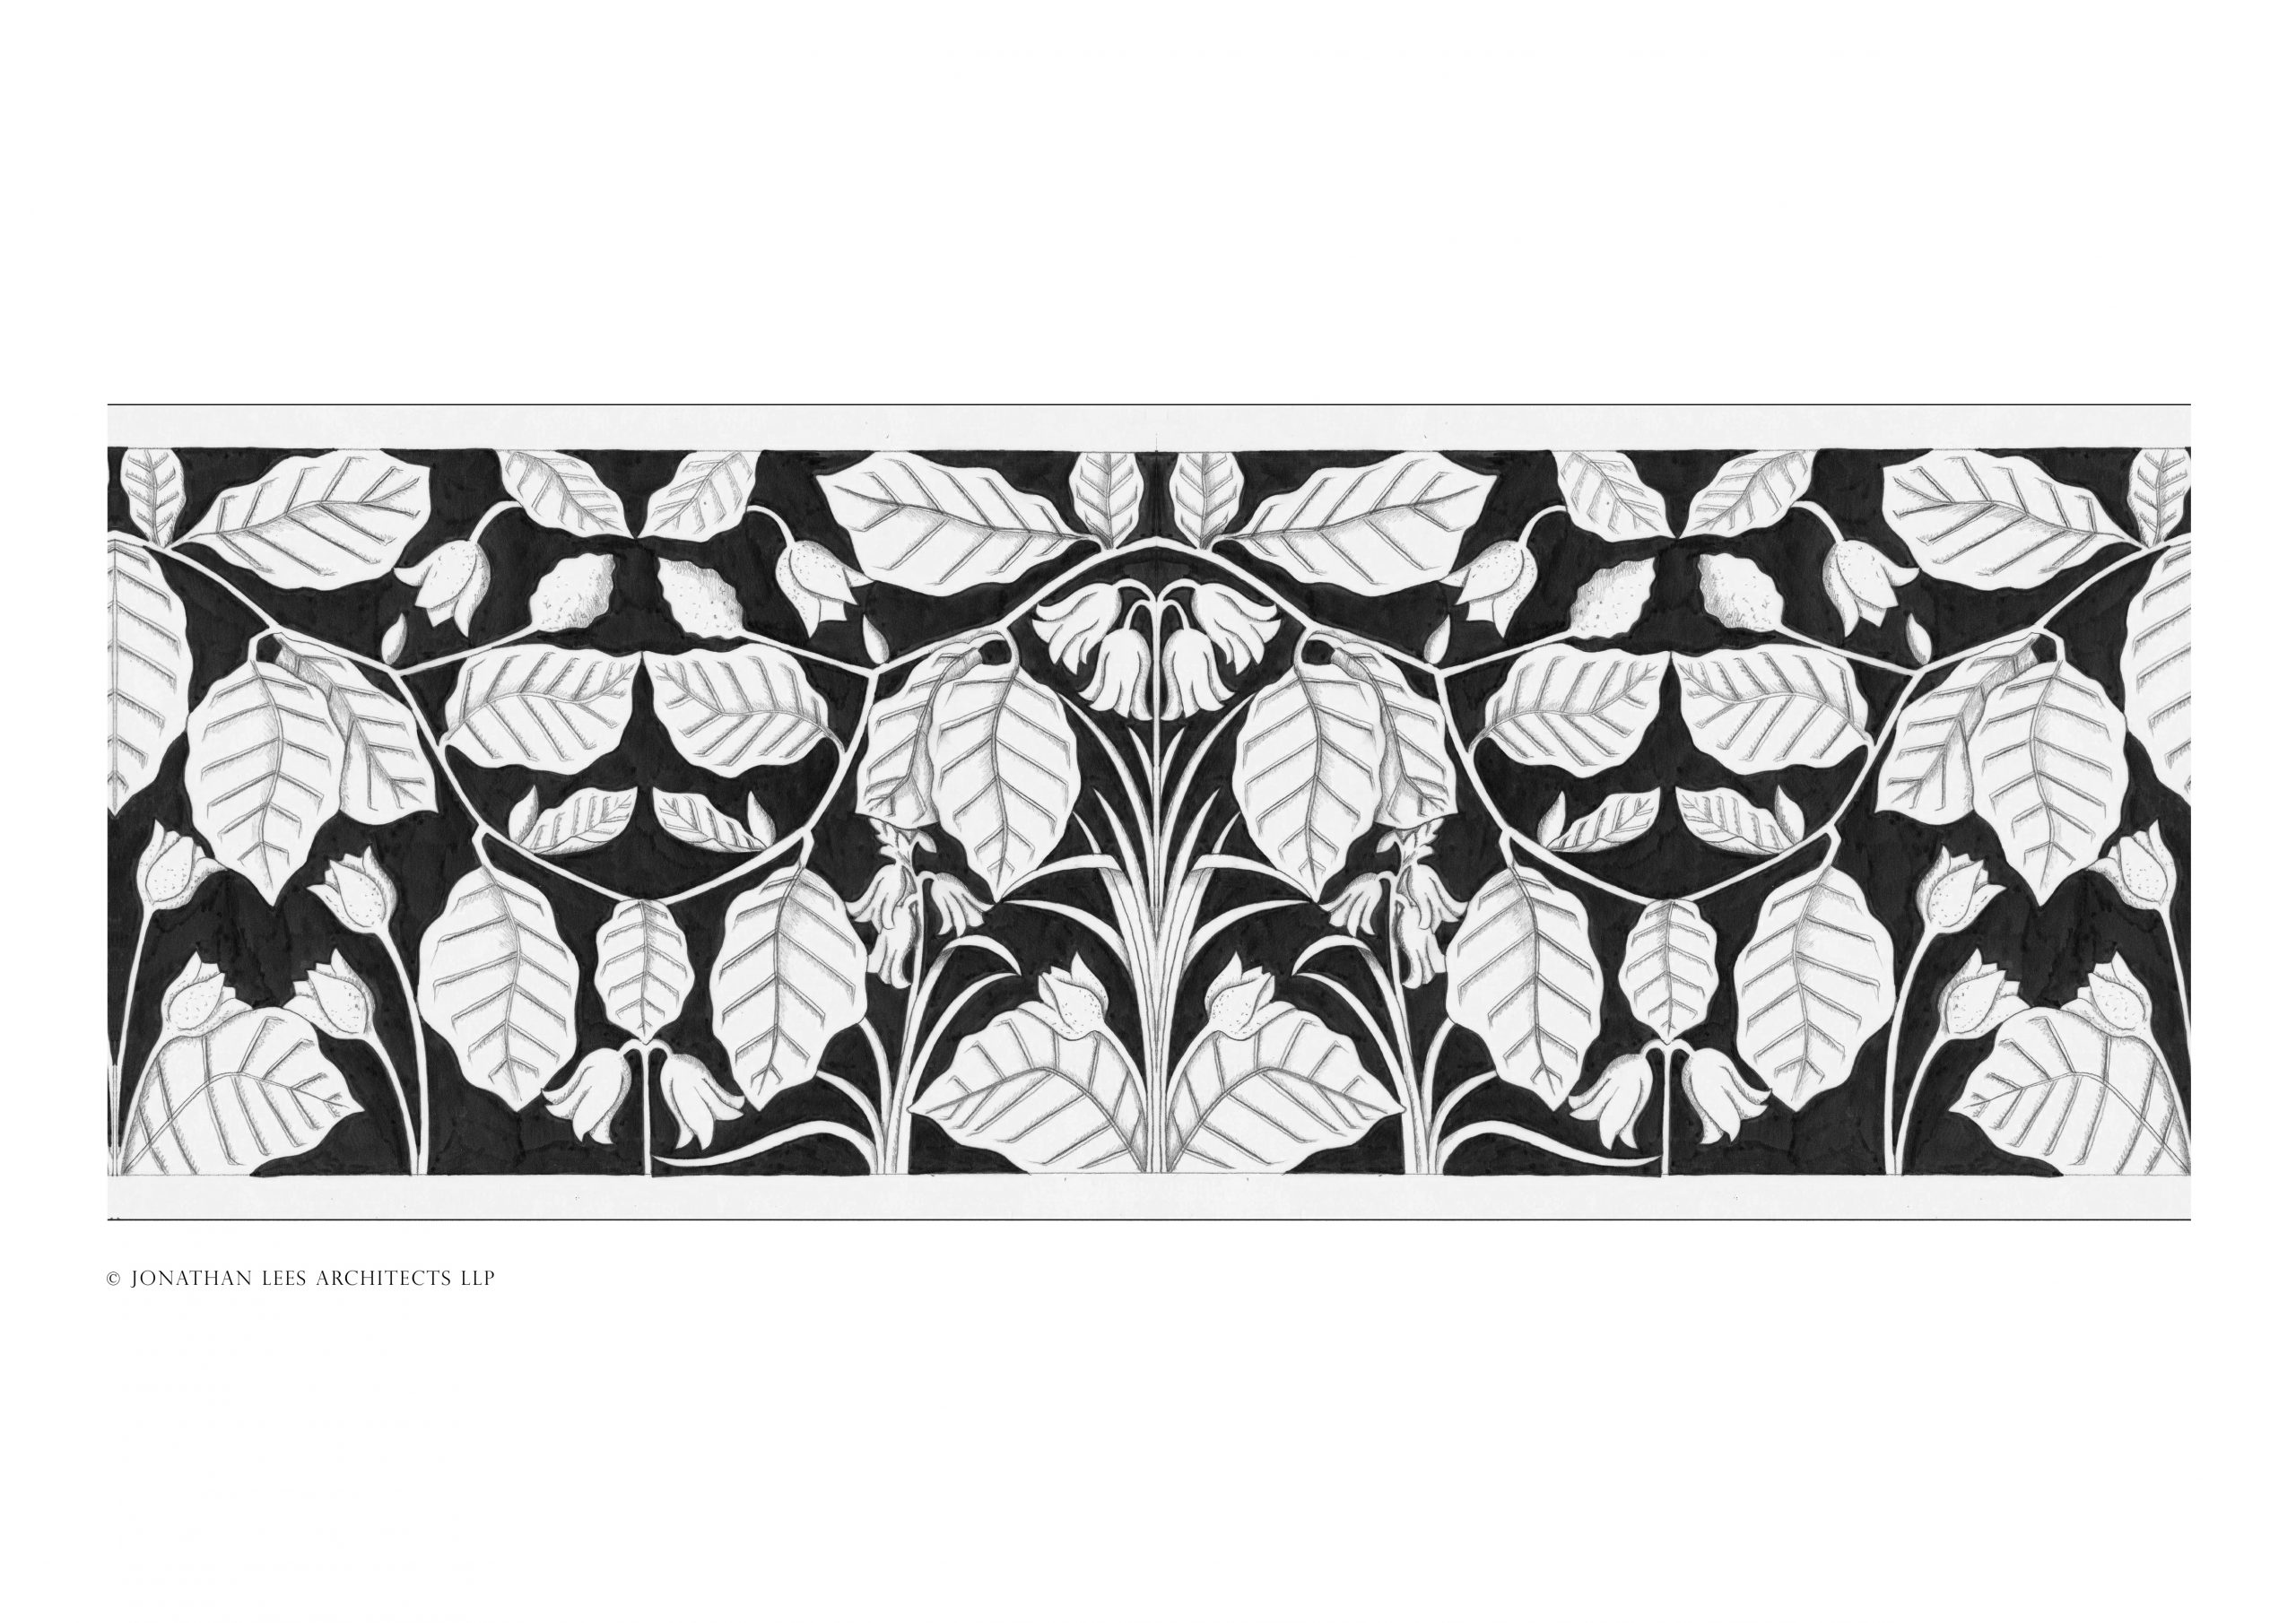 Heating vent cover design with beech leaves and bluebells